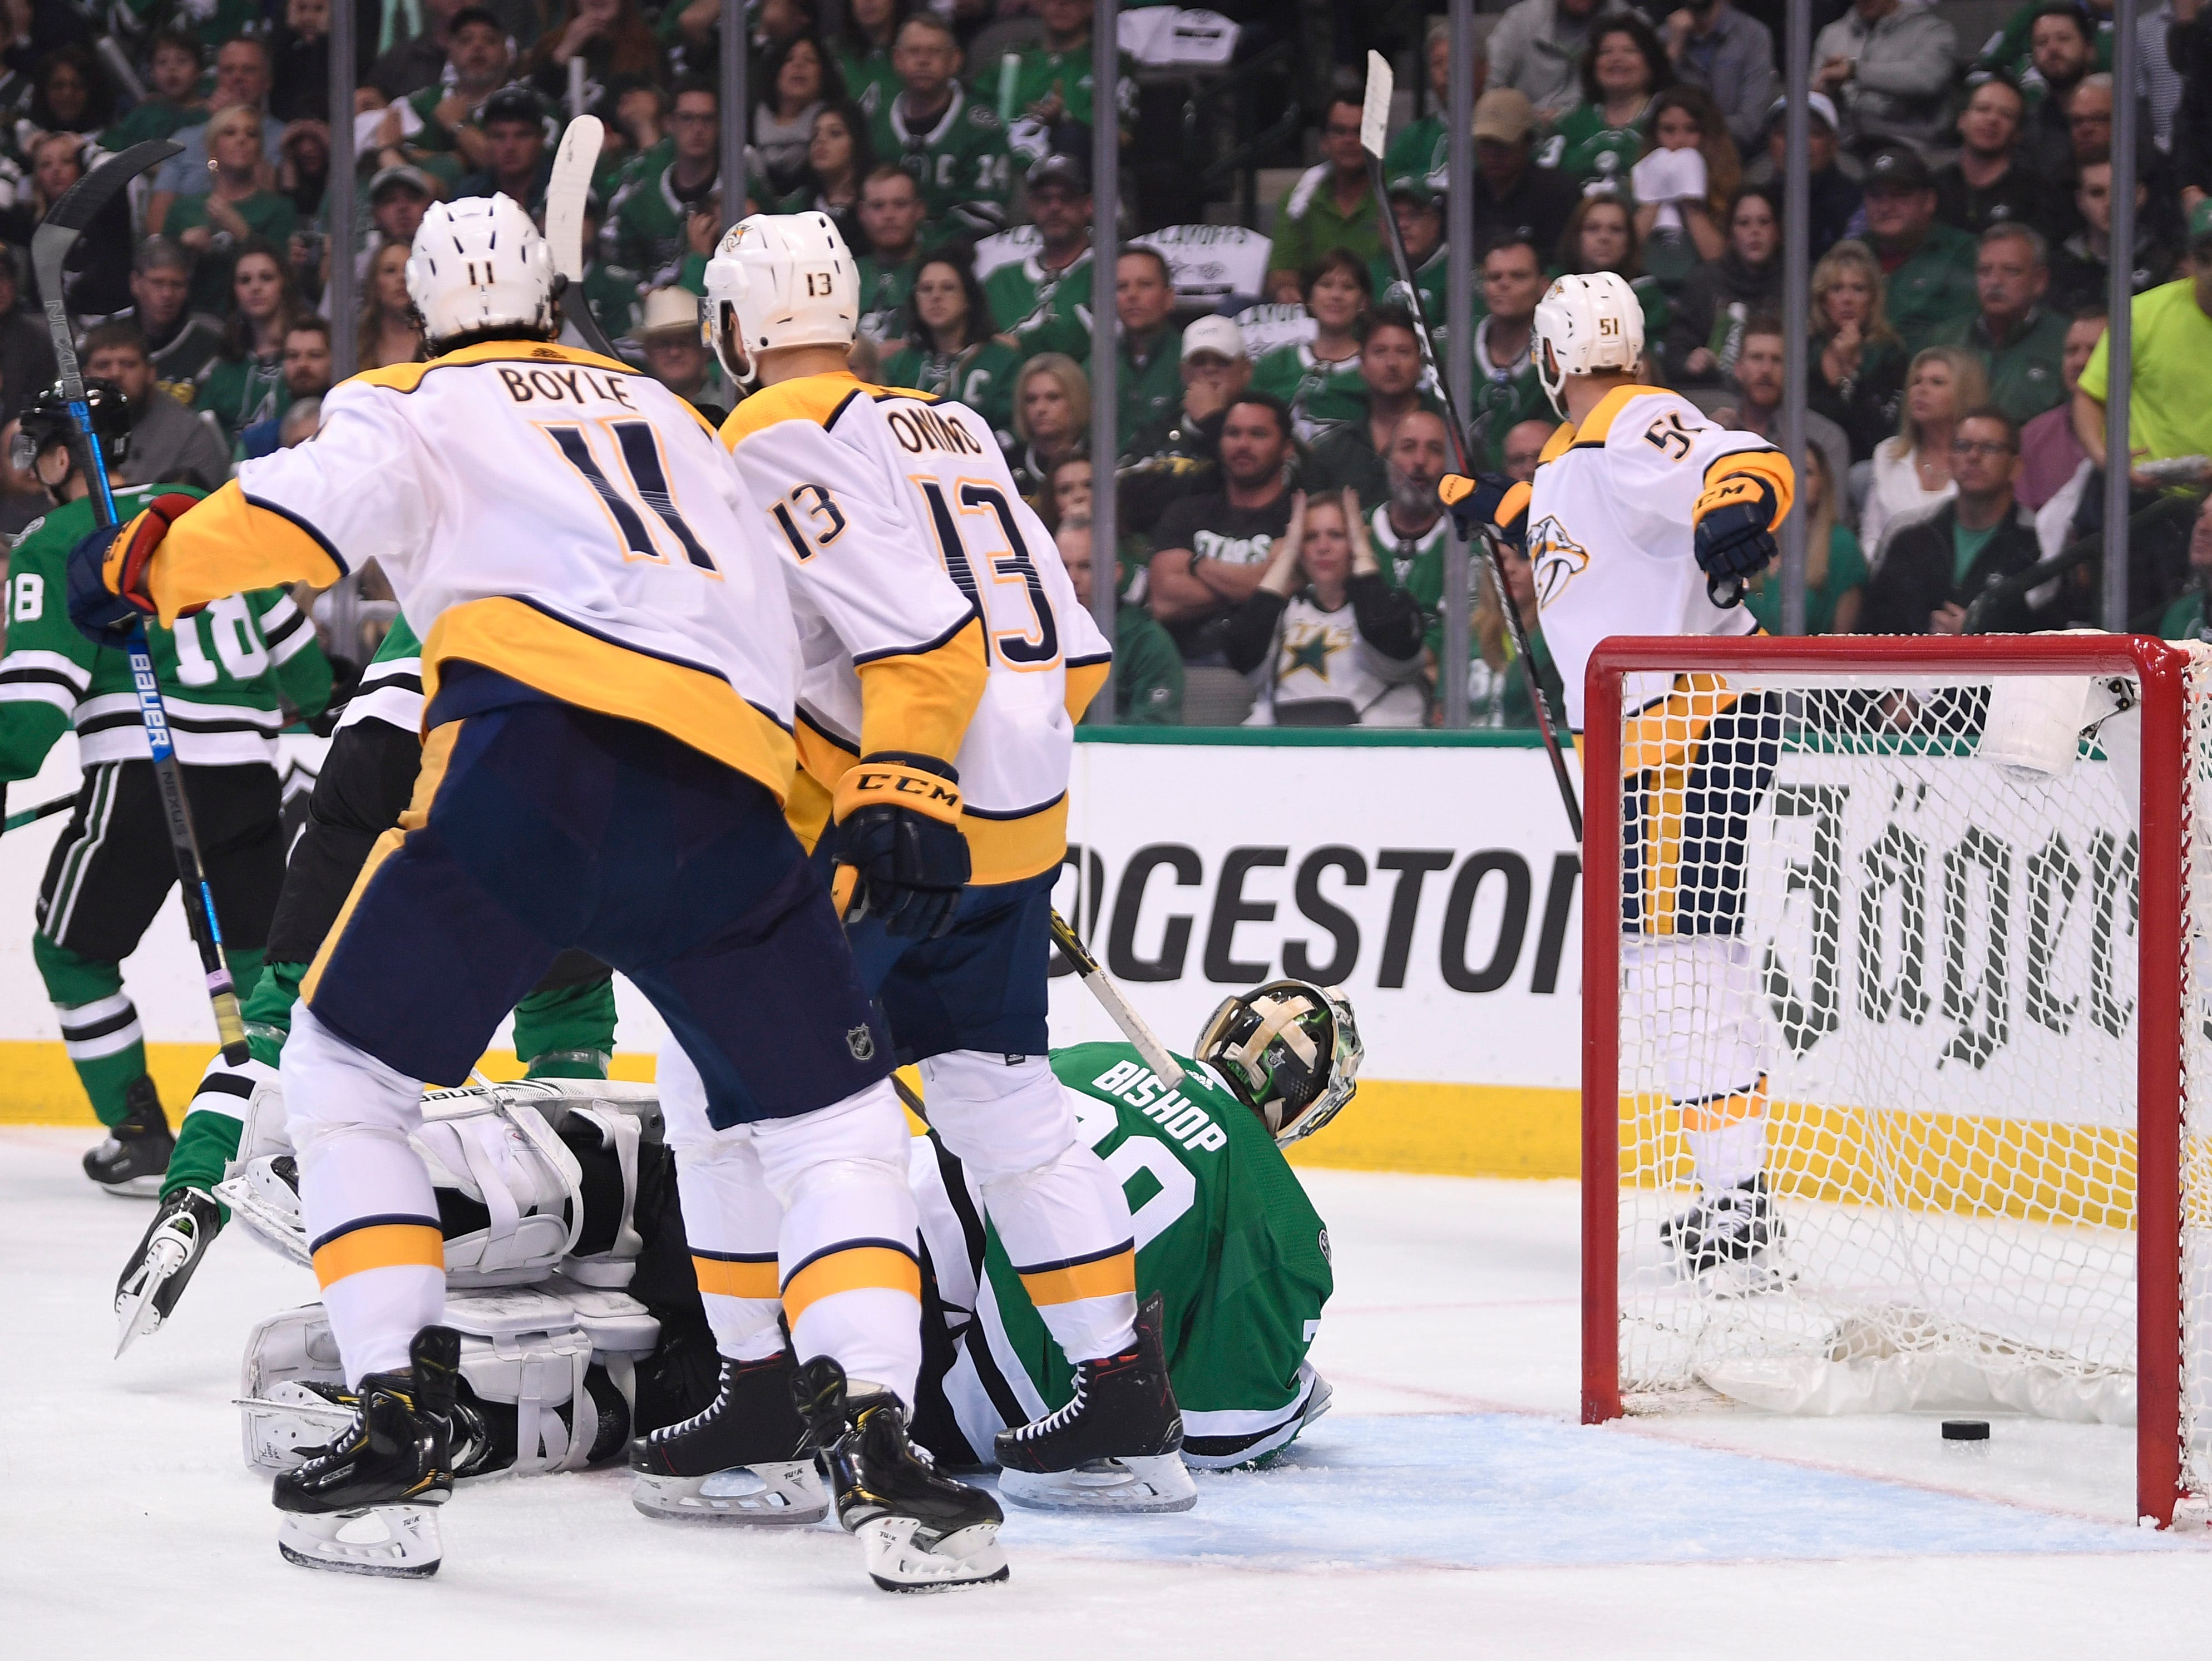 The Predators react to the goal by Nashville Predators left wing Austin Watson (51), back right, during the first period of the divisional semifinal game at the American Airlines Center in Dallas, Texas, Monday, April 22, 2019.